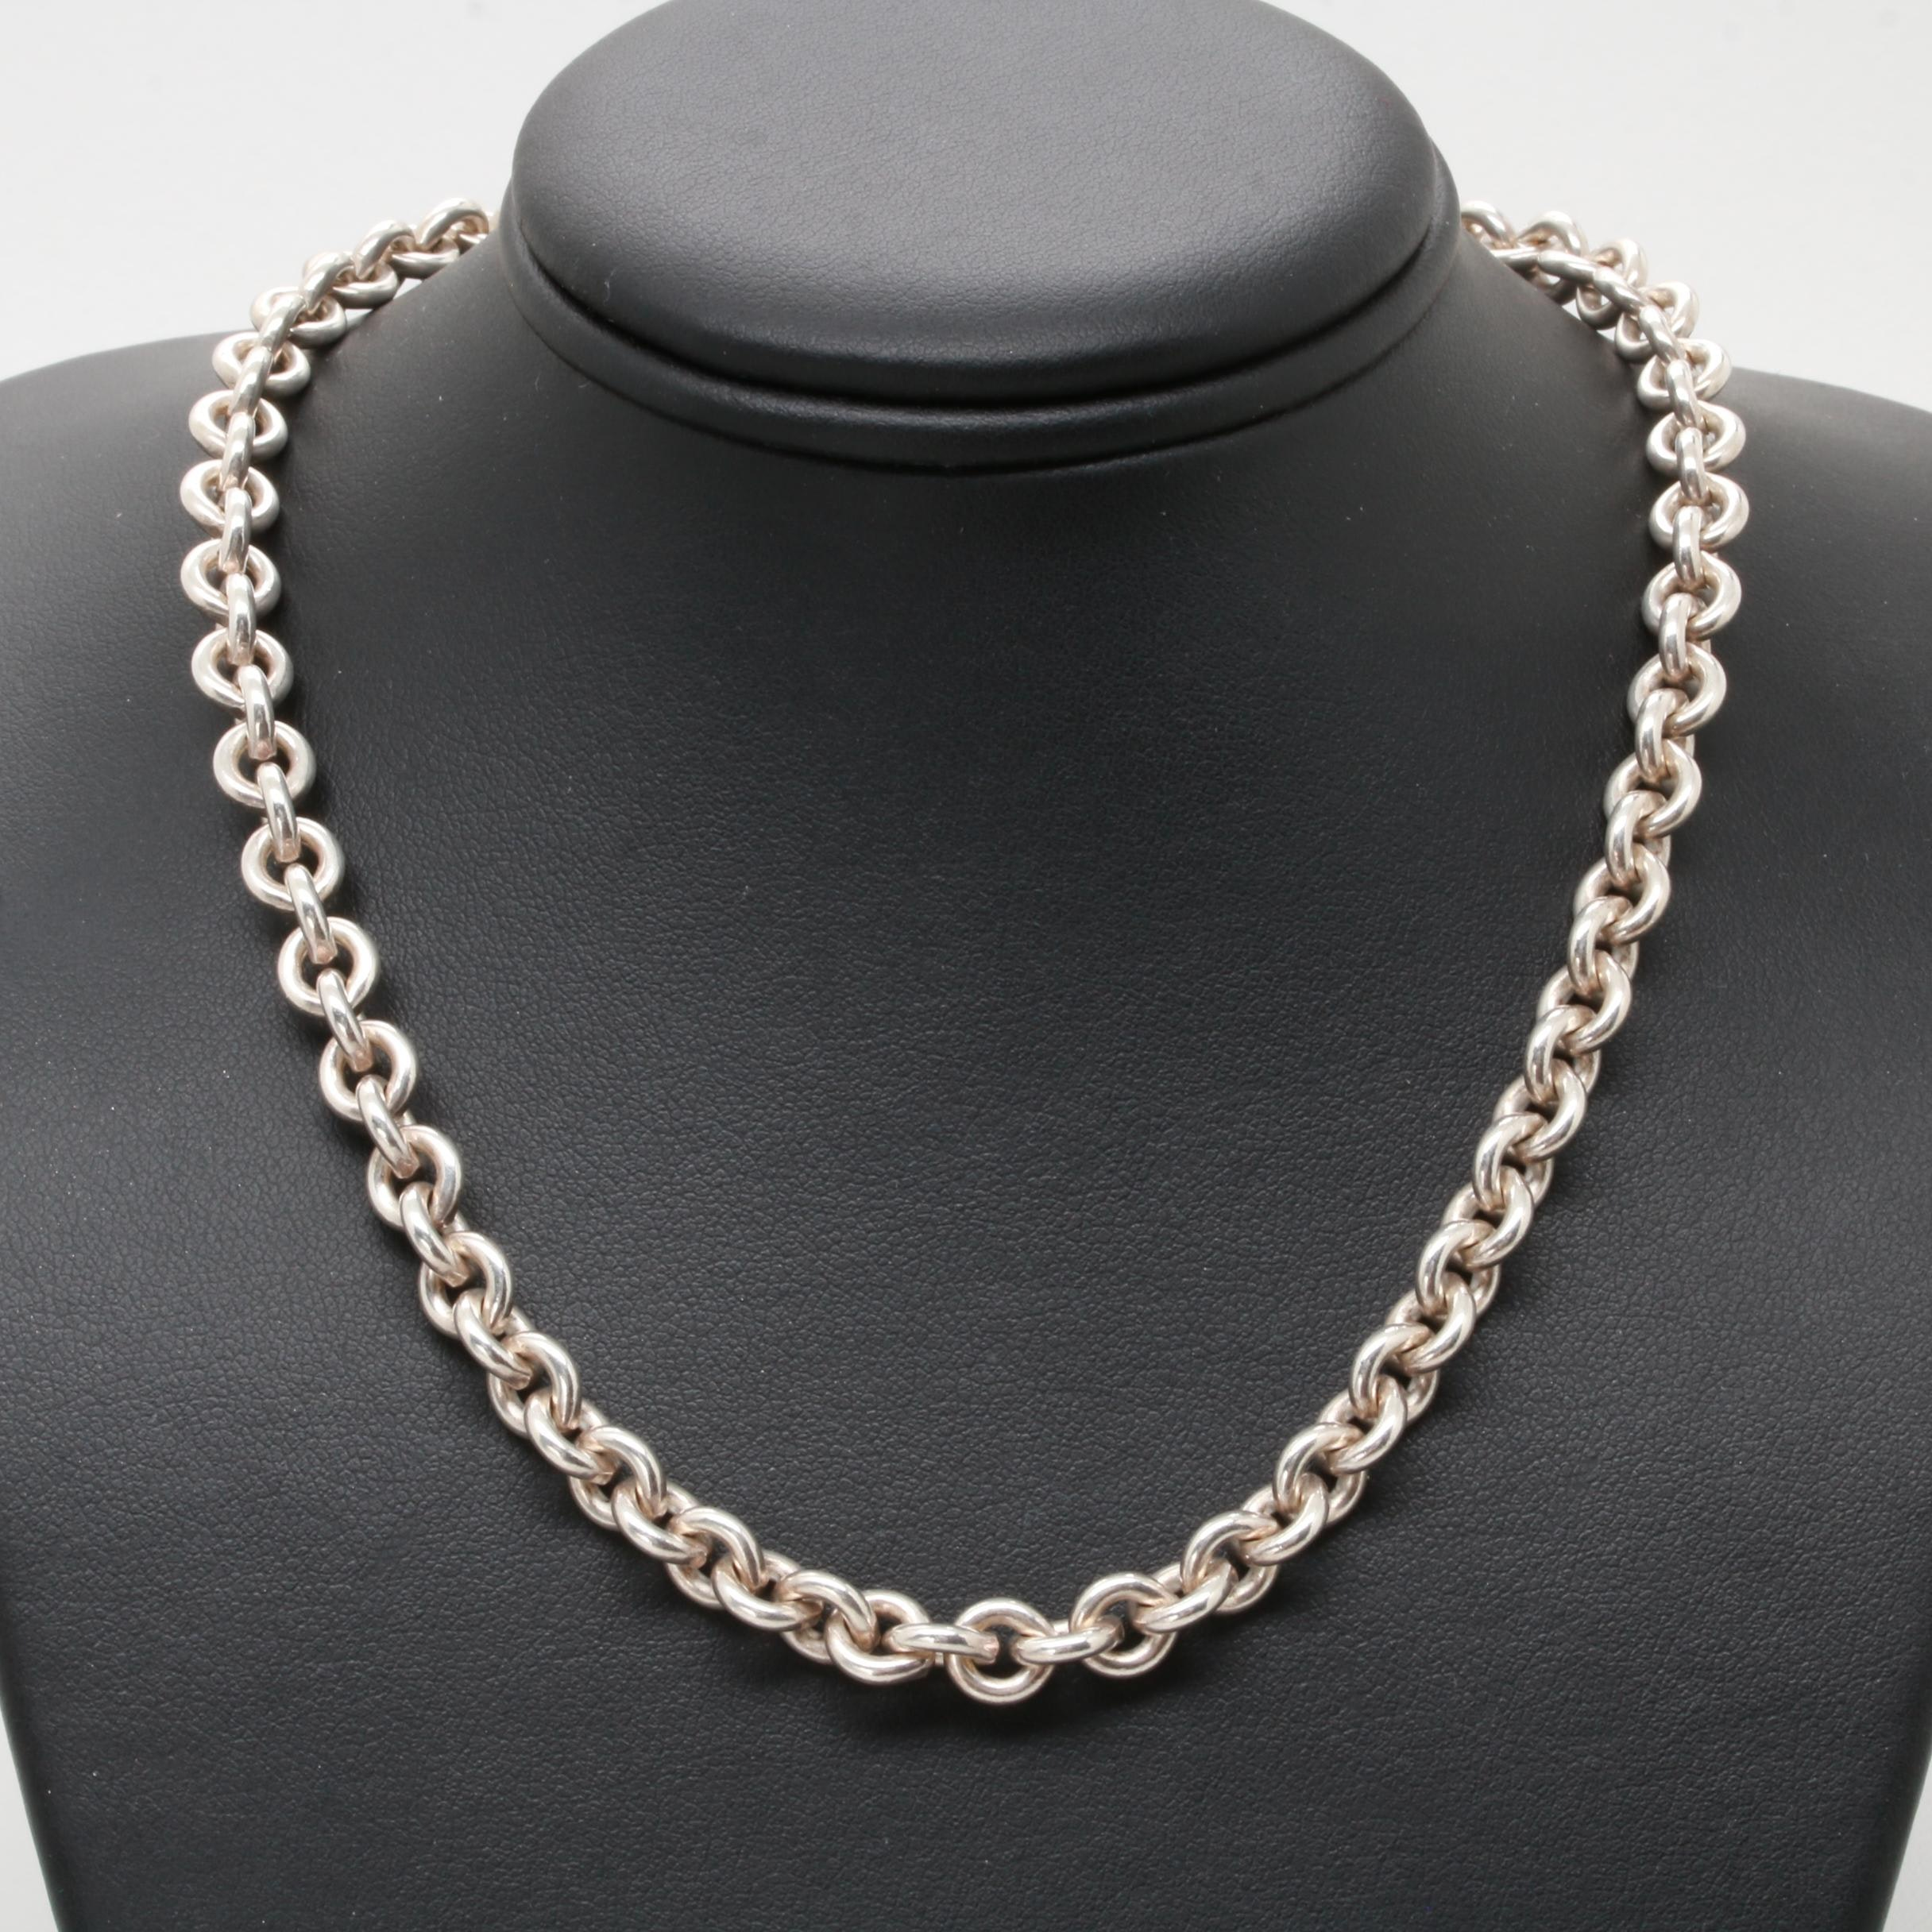 Guess Silver Tone Rolo Chain Necklace